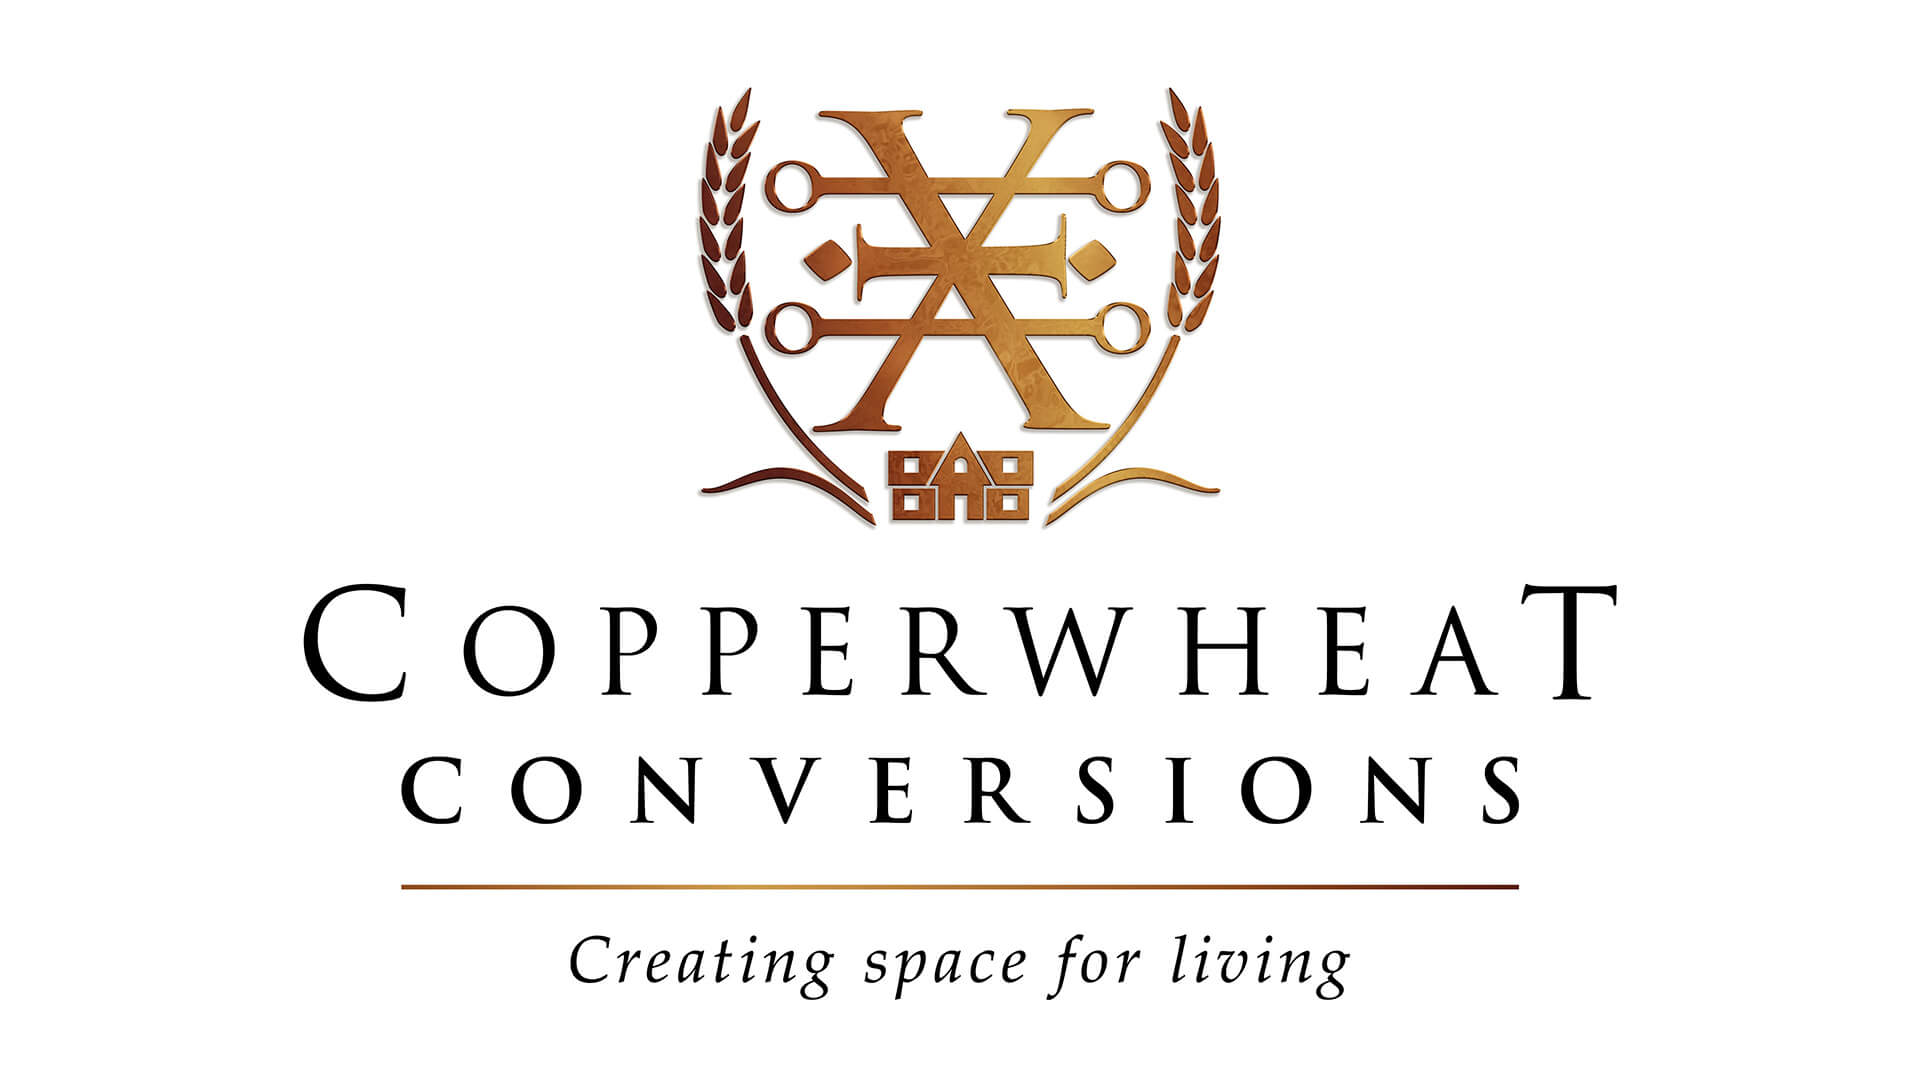 copperwheat conversions 4